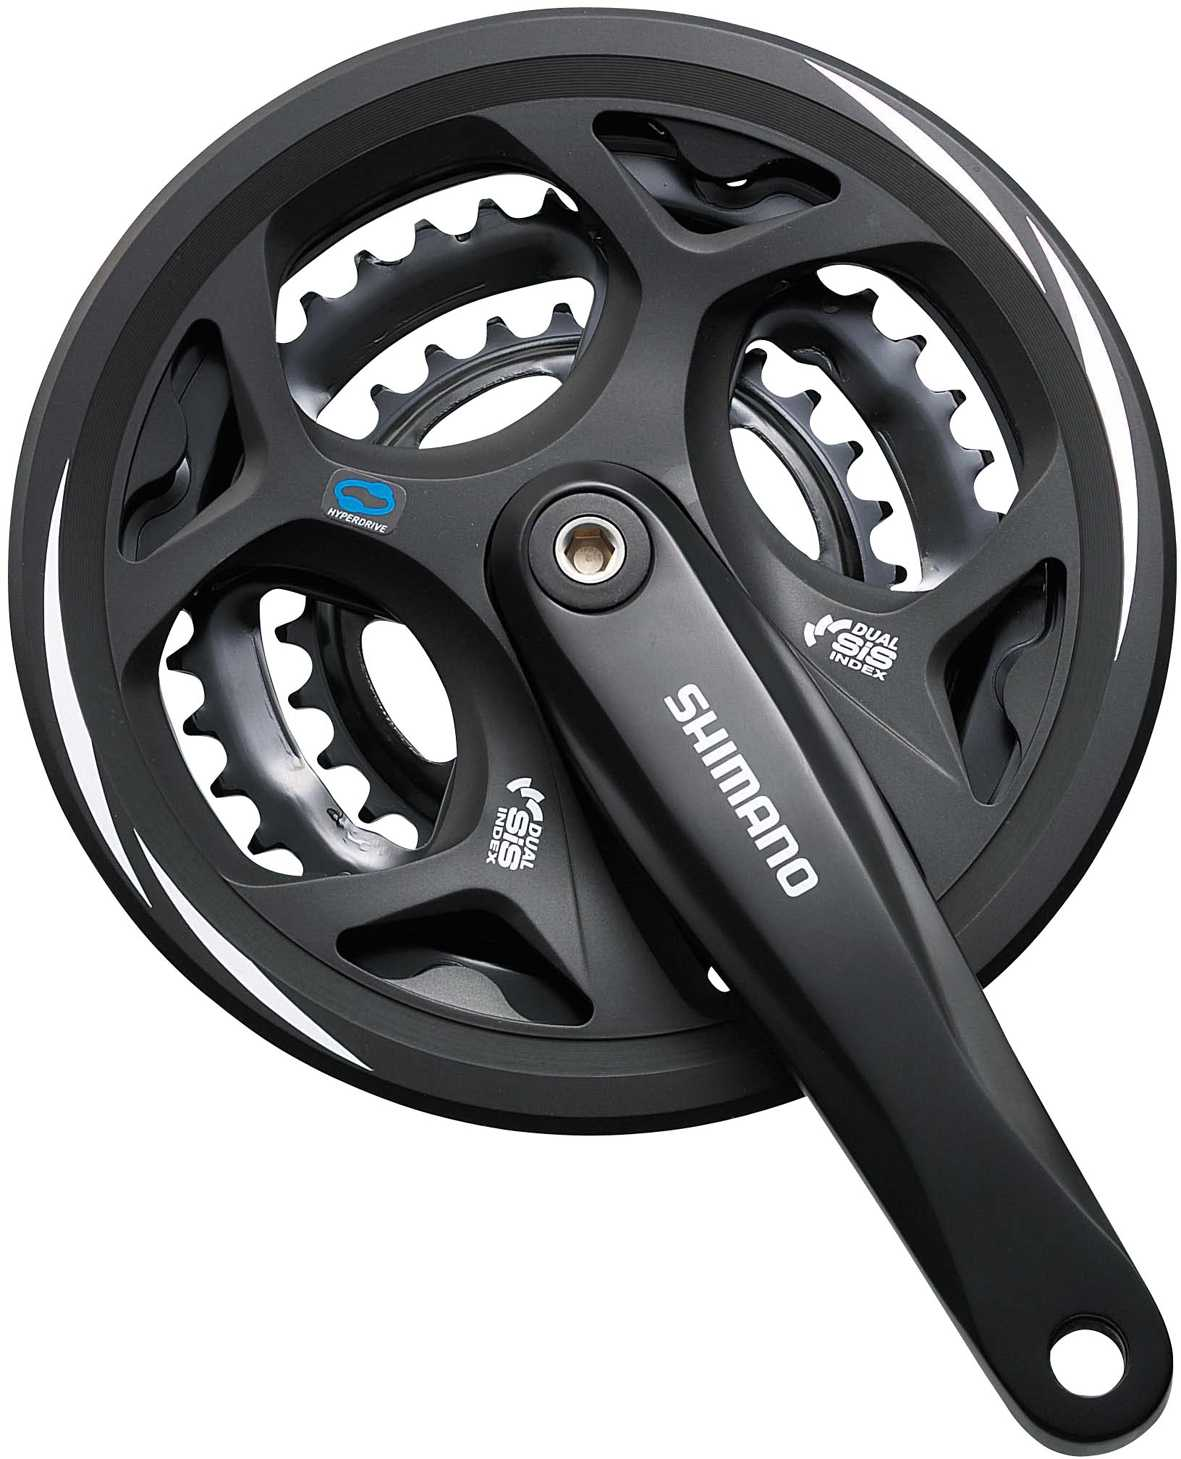 Shimano Altus M311 8 Speed 48/38/28 Square Taper 170mm Chainset with chainguard - Black